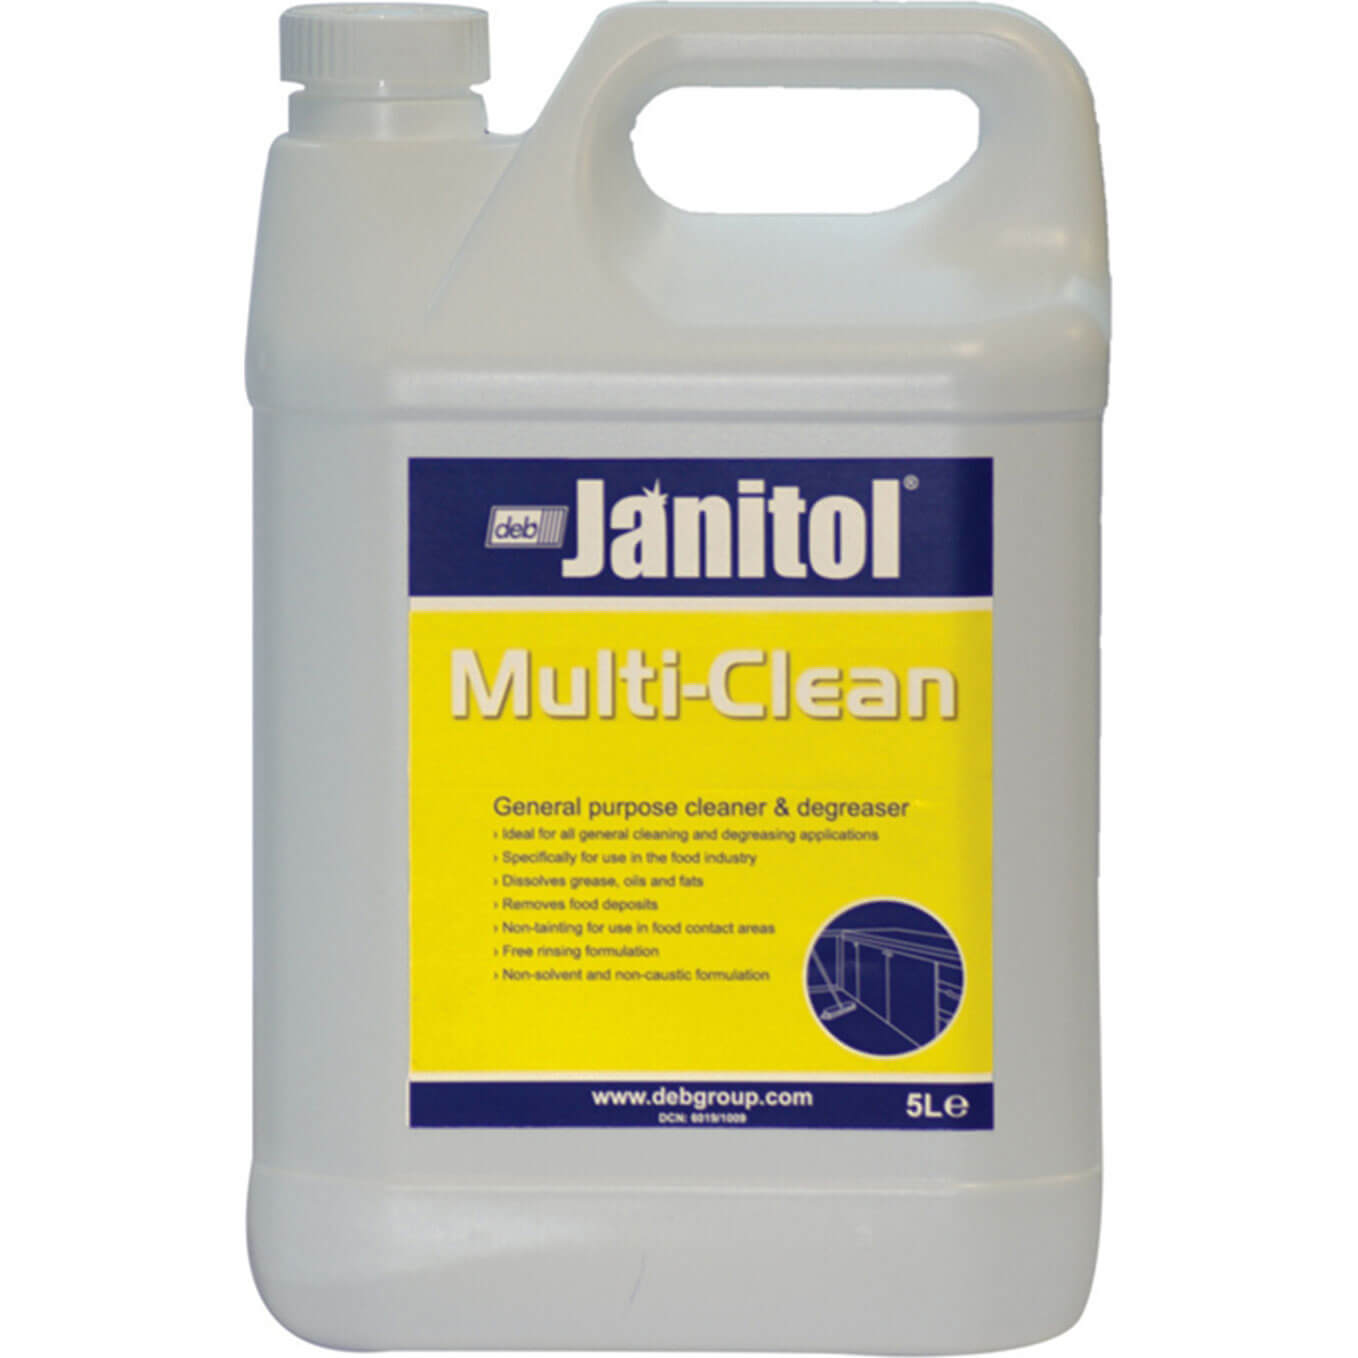 Swarfega Janitol Multi Cleaner & Degreaser 5L